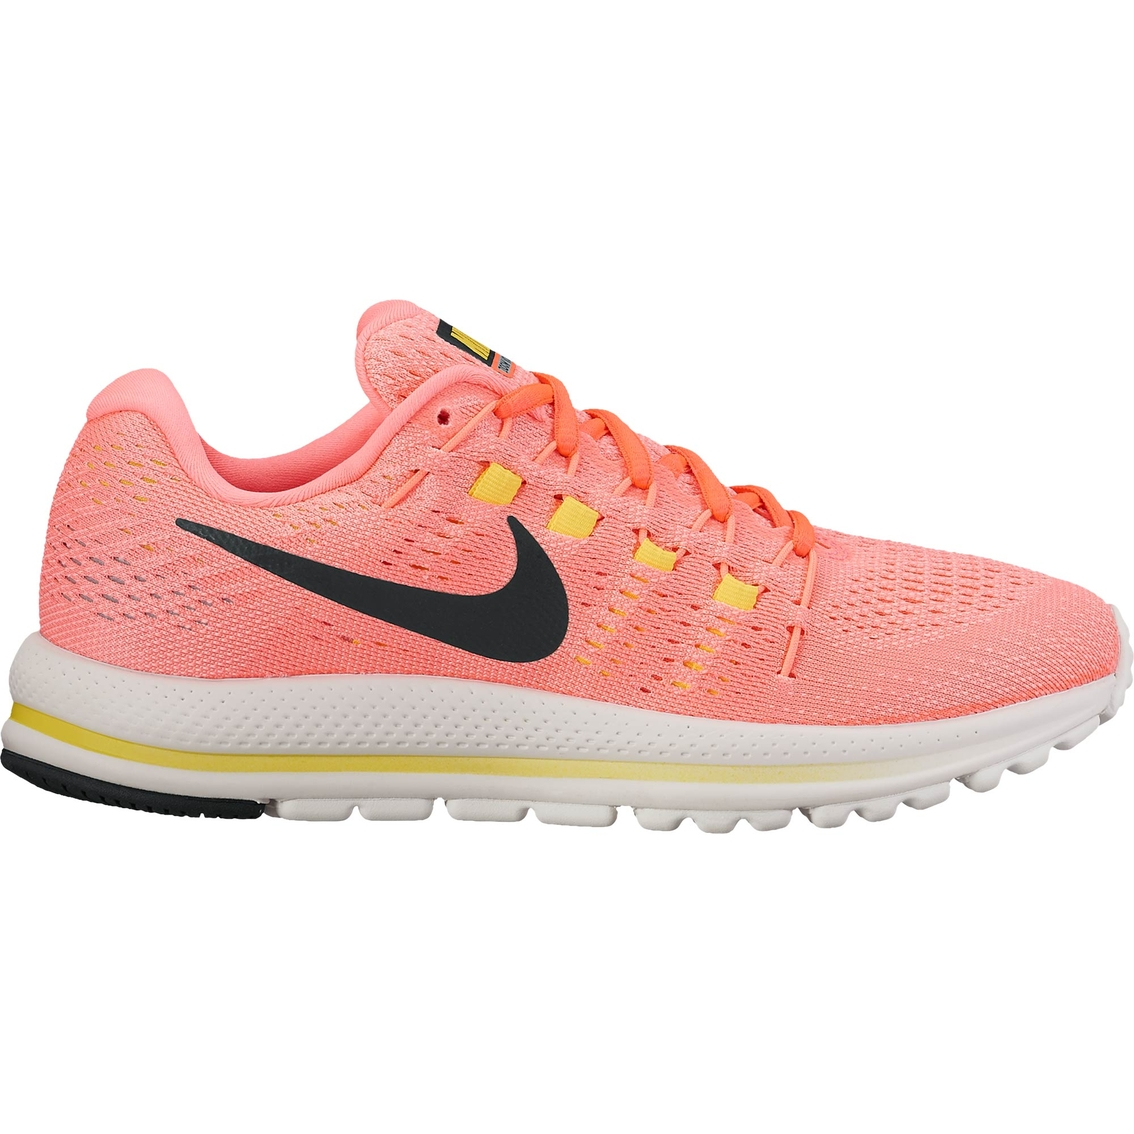 Nike Women s Air Zoom Vomero 12 Running Shoes  7a022b39a10